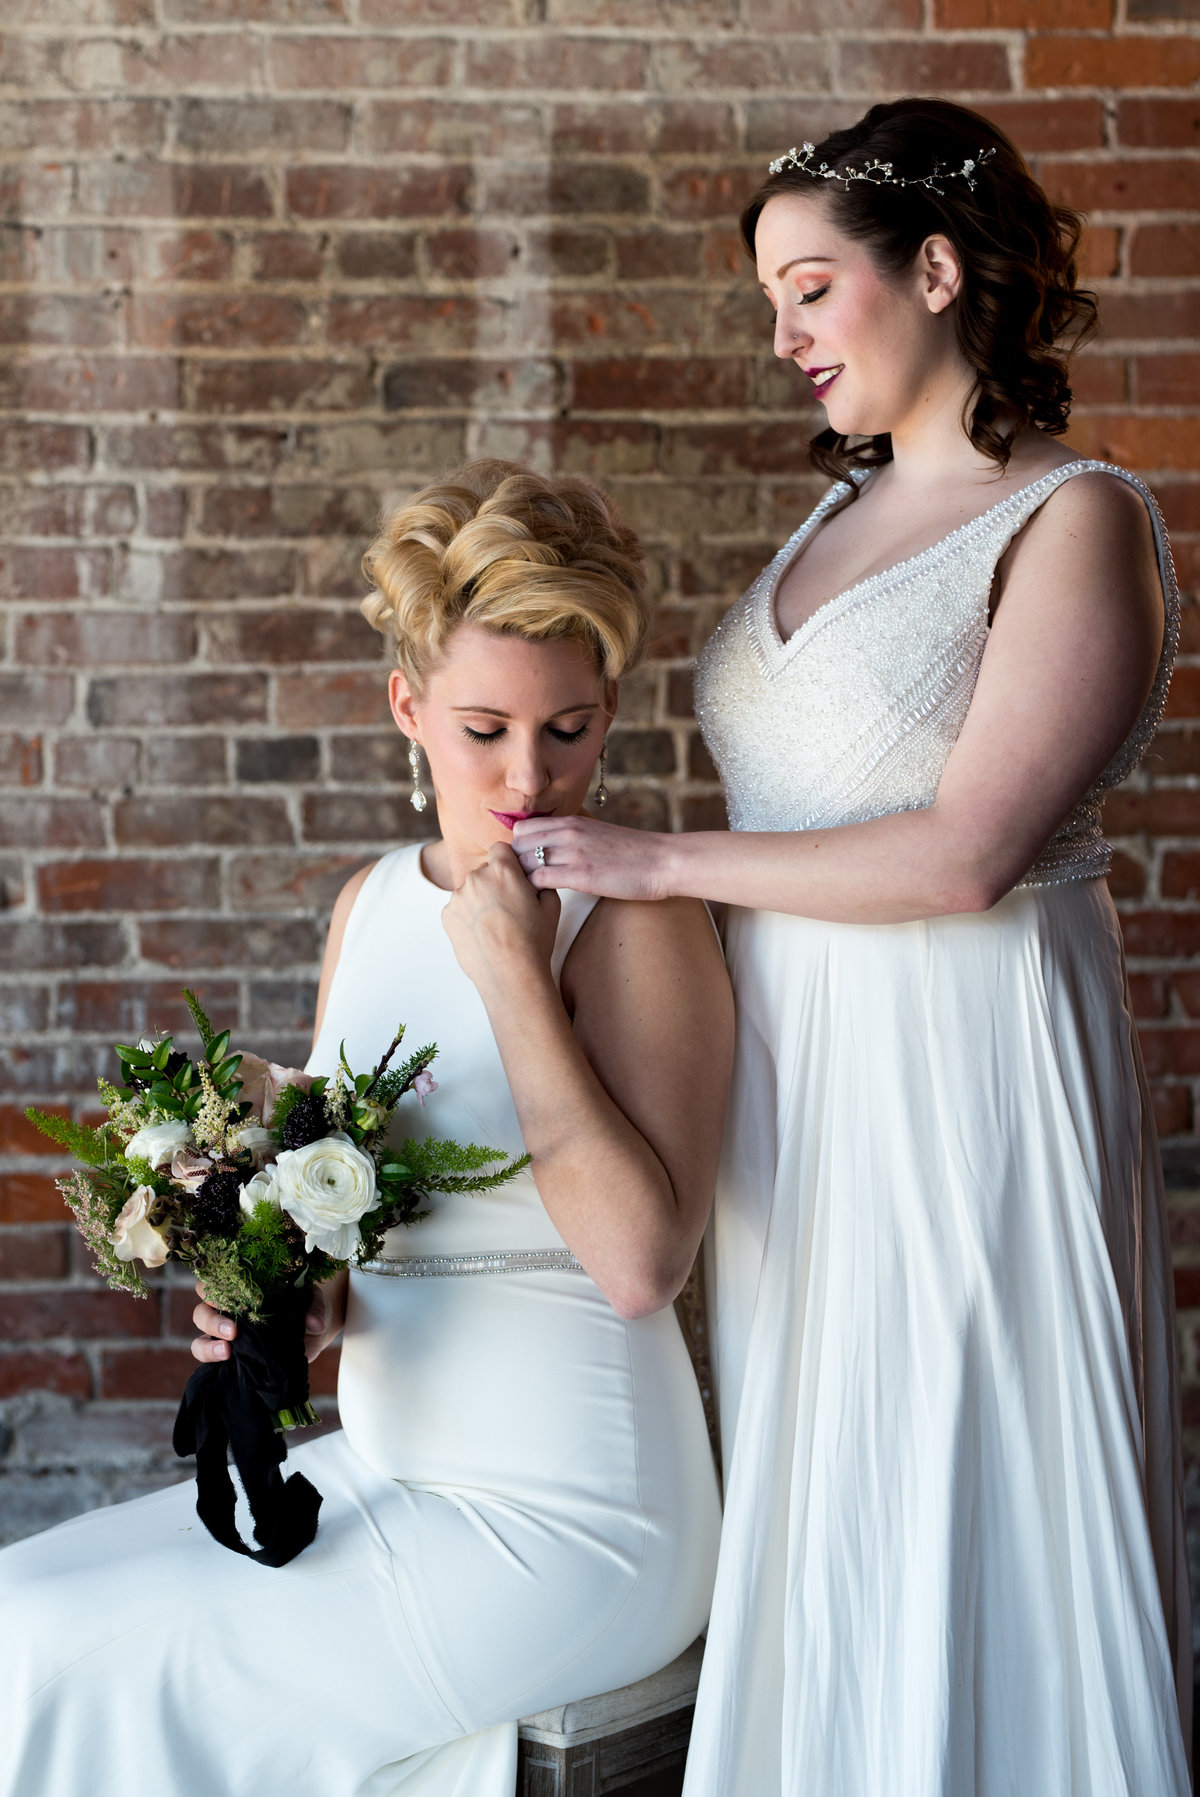 Industrial-Romance-styled-shoot-216